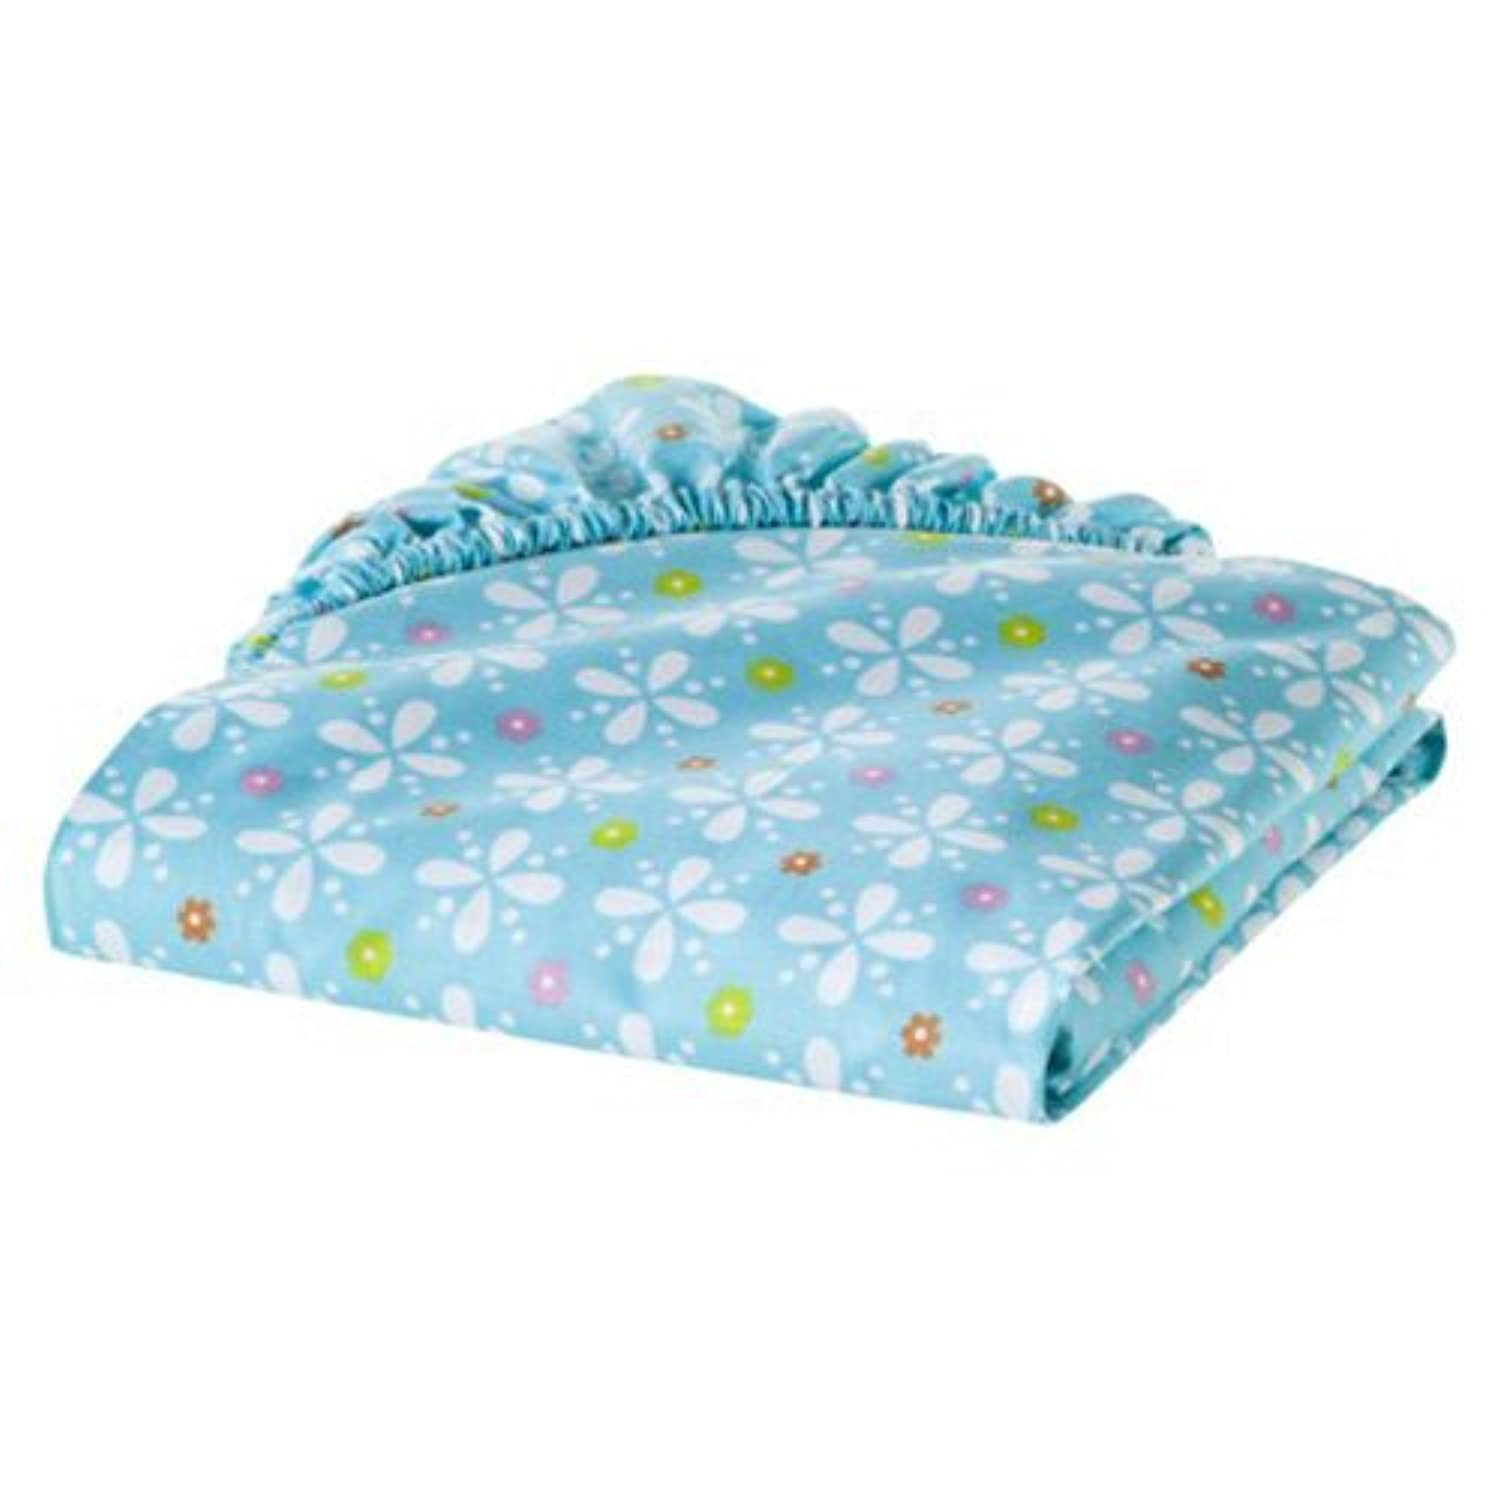 Sumersault Multi Birdie Patches Fitted Crib Sheet by Sumersault